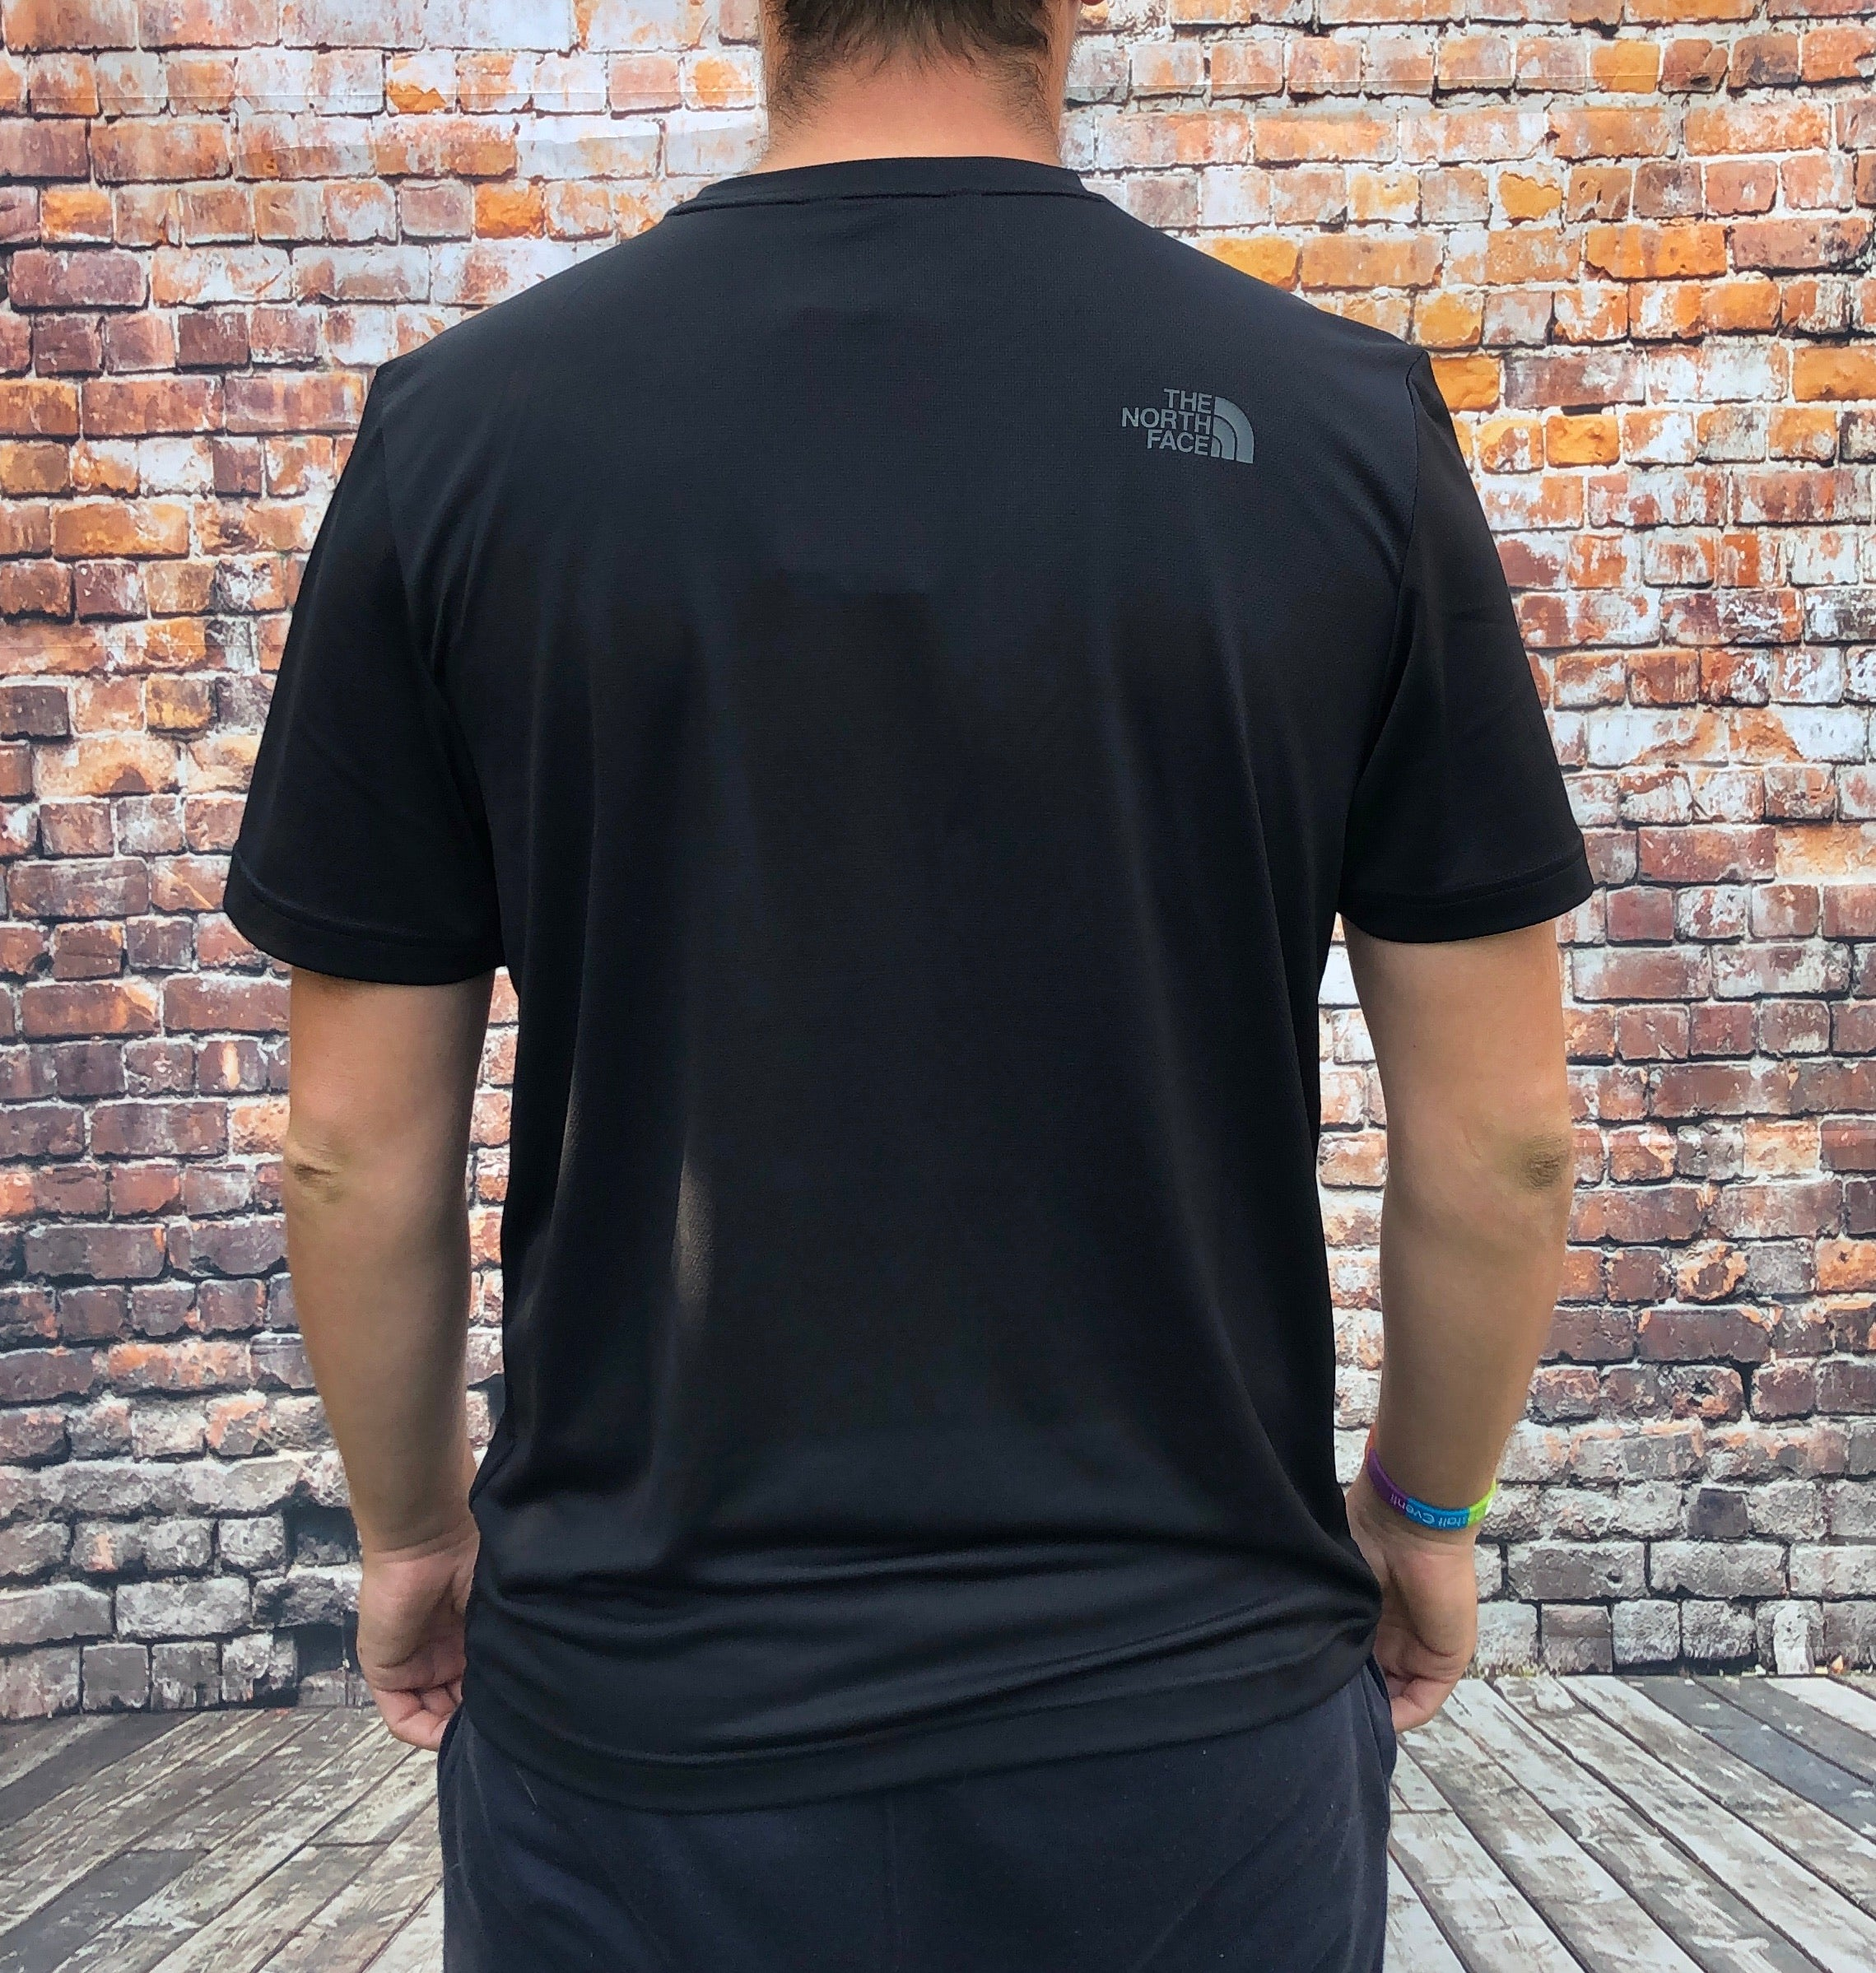 Black, round-neck, The North Face, sports tee shirt with a large, silver, printed logo on the chest and small logo on the reverse shoulder